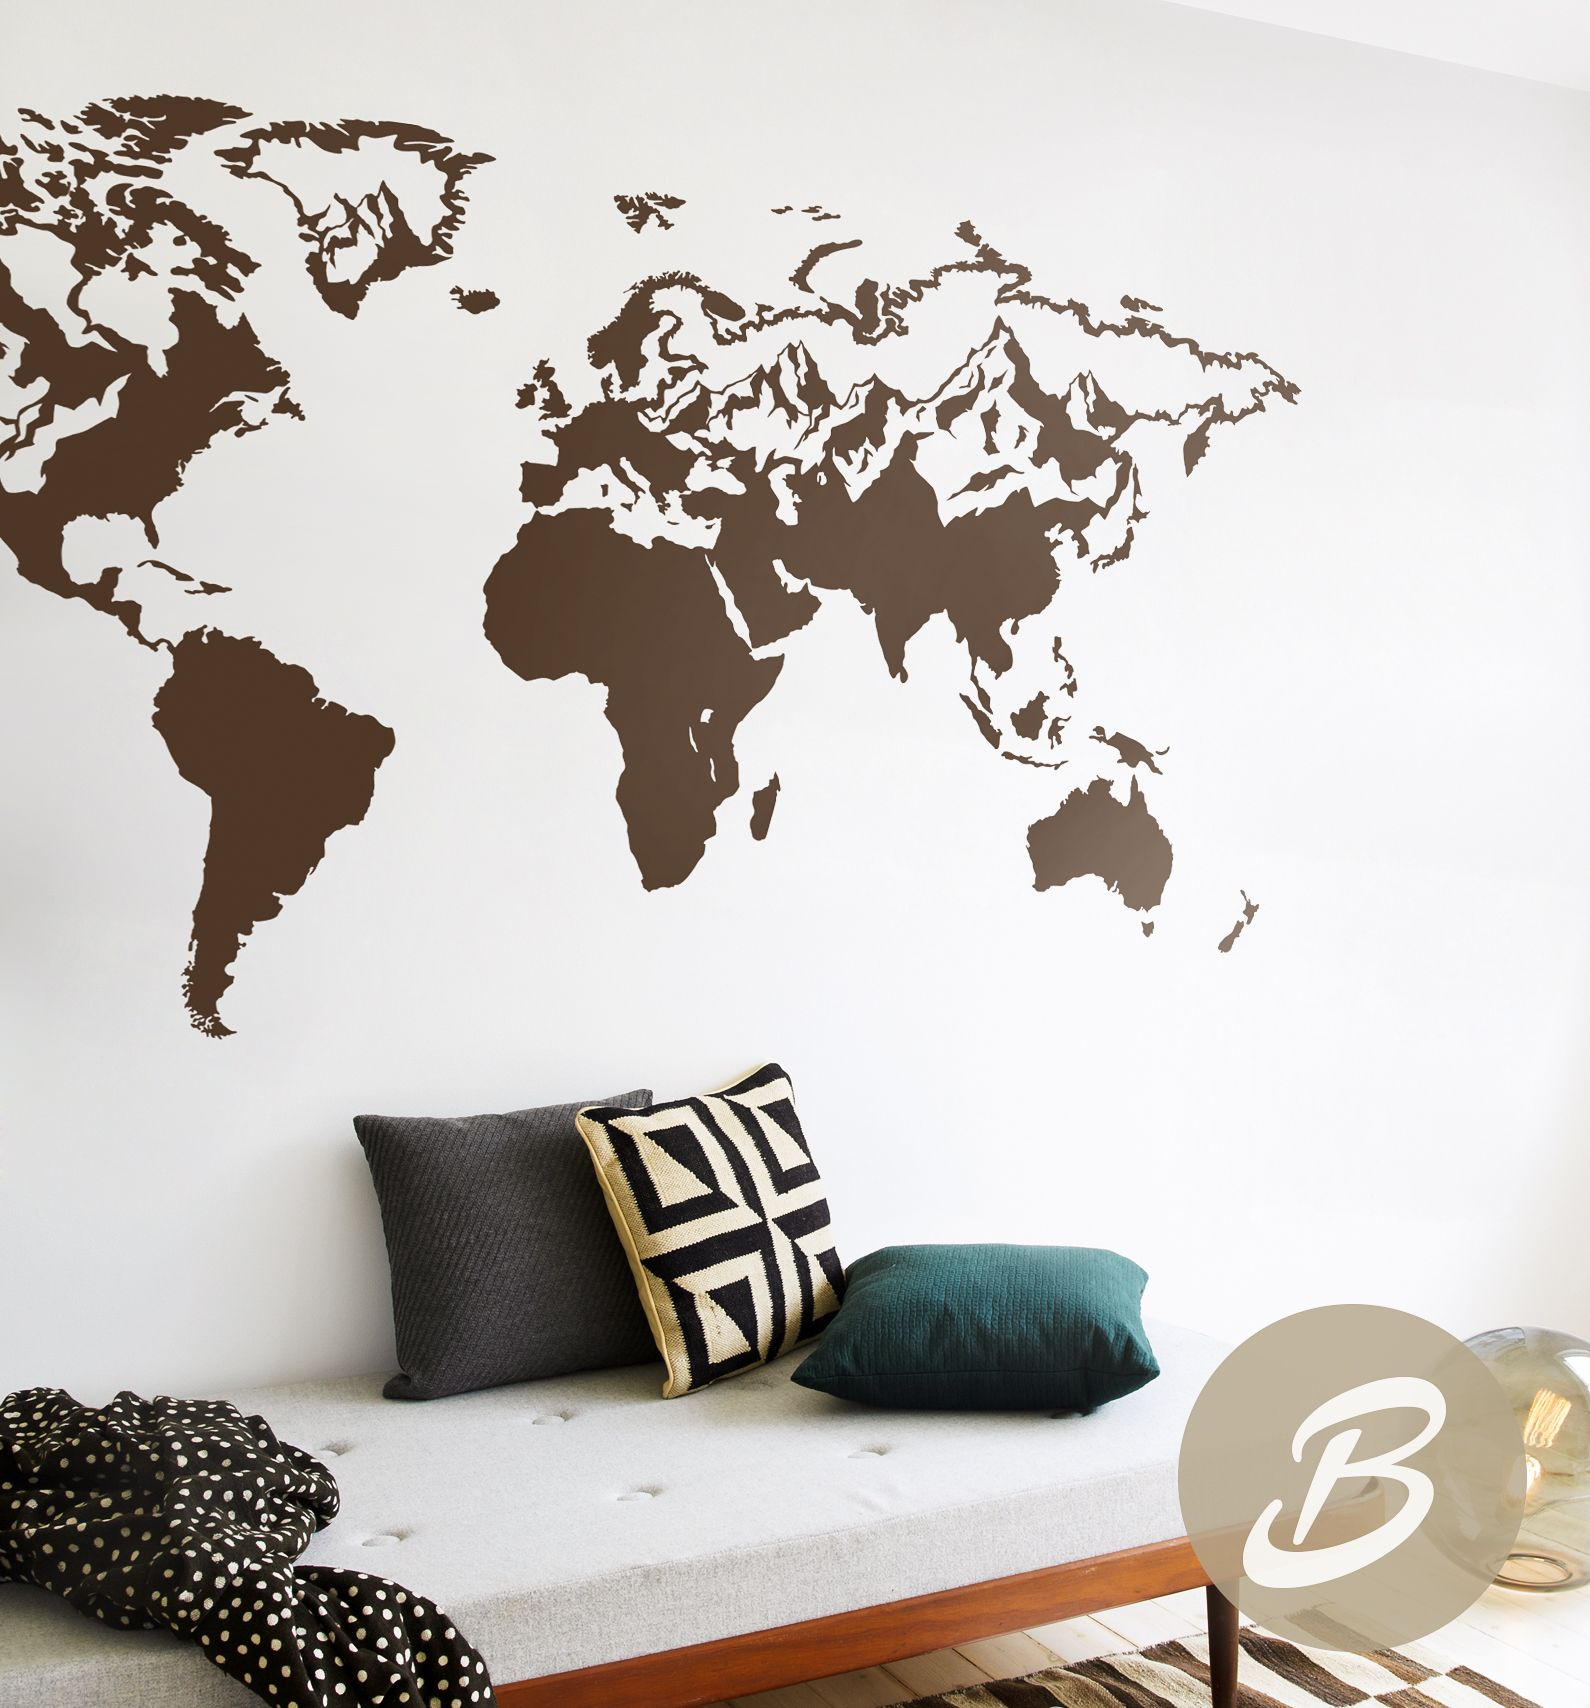 Map Of The World Decal Wall Map Decal World Map Sticker World Map Wall  Decal Vinyl Map Decal Big Map Decal Wall Map Sticker AK002